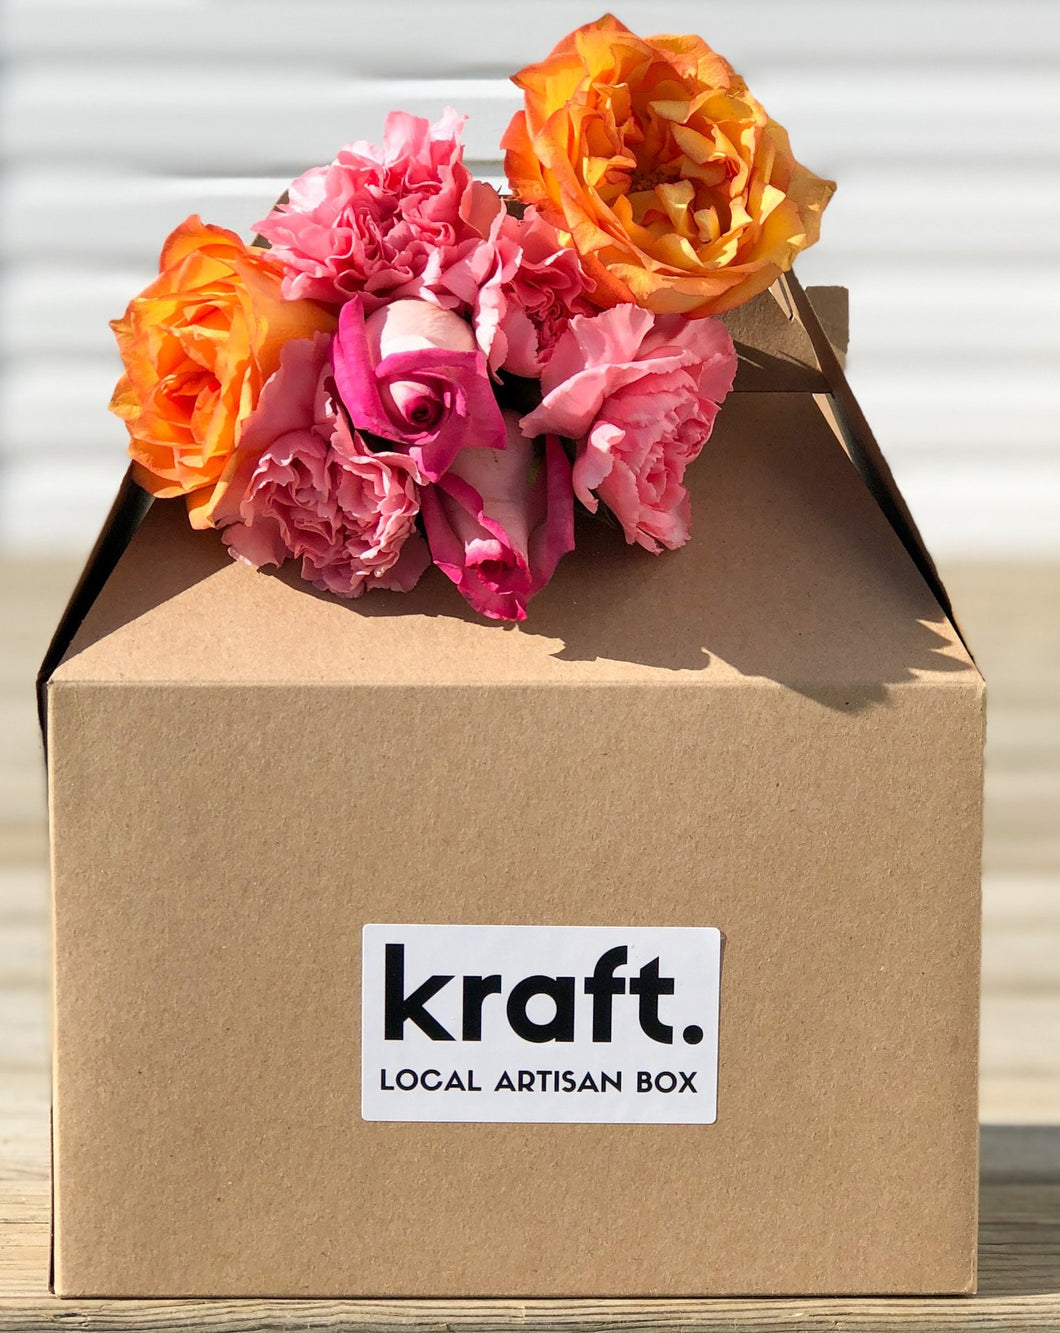 kraft. spring blossom box (available March 2021)